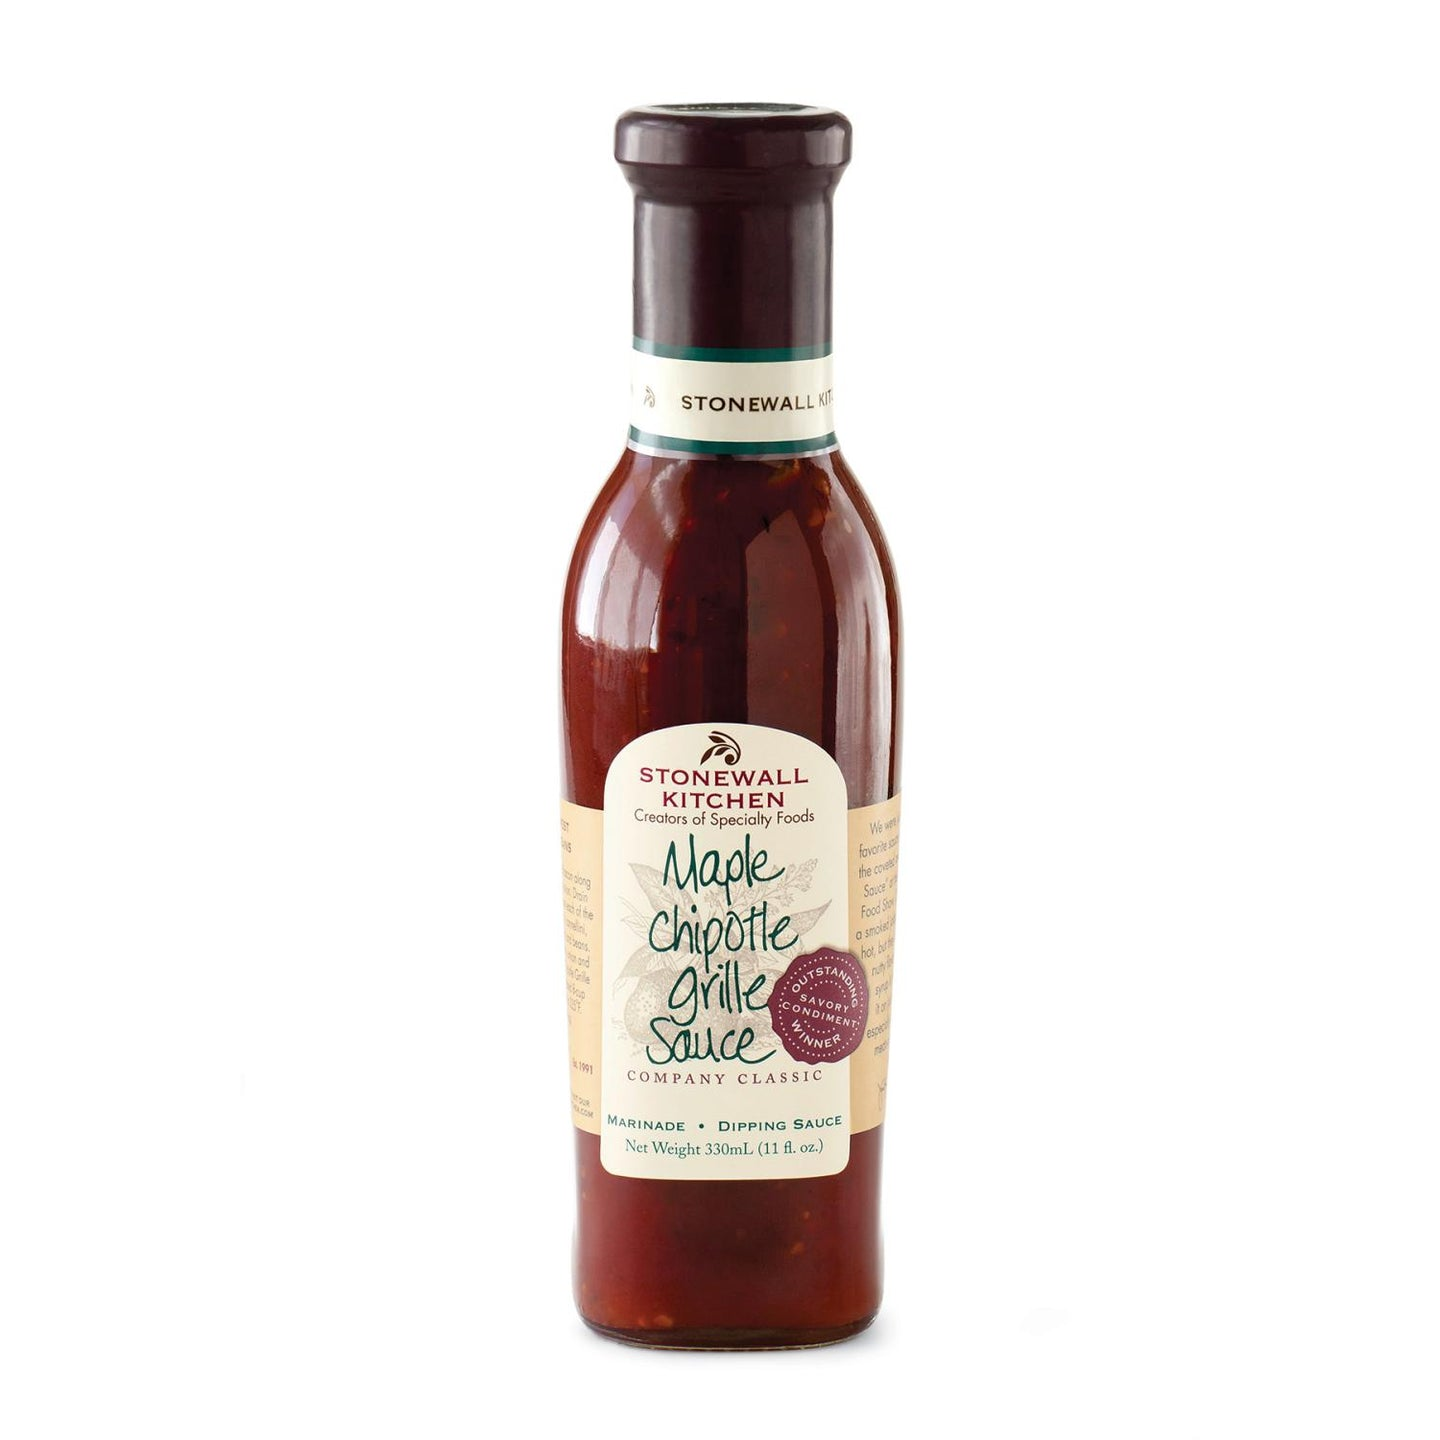 Maple Chipotle Grille Sauce